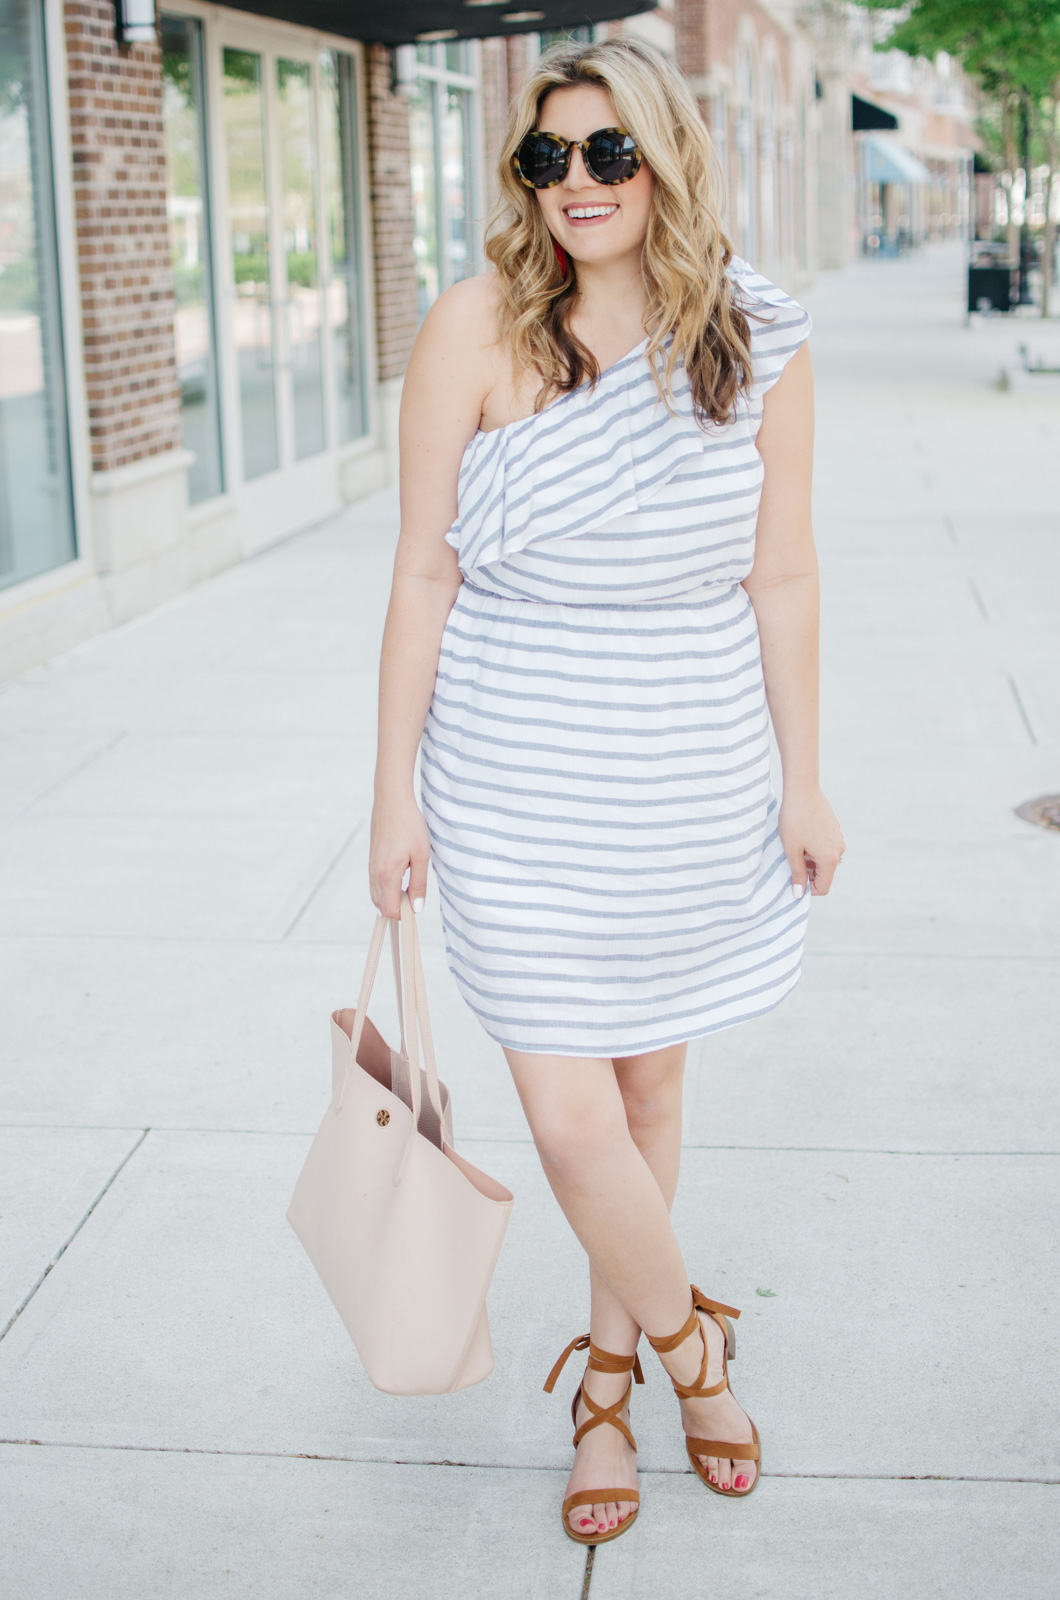 stripe one shoulder dress - spring sundress outfit | For more cute casual spring outfits, head to bylaurenm.com